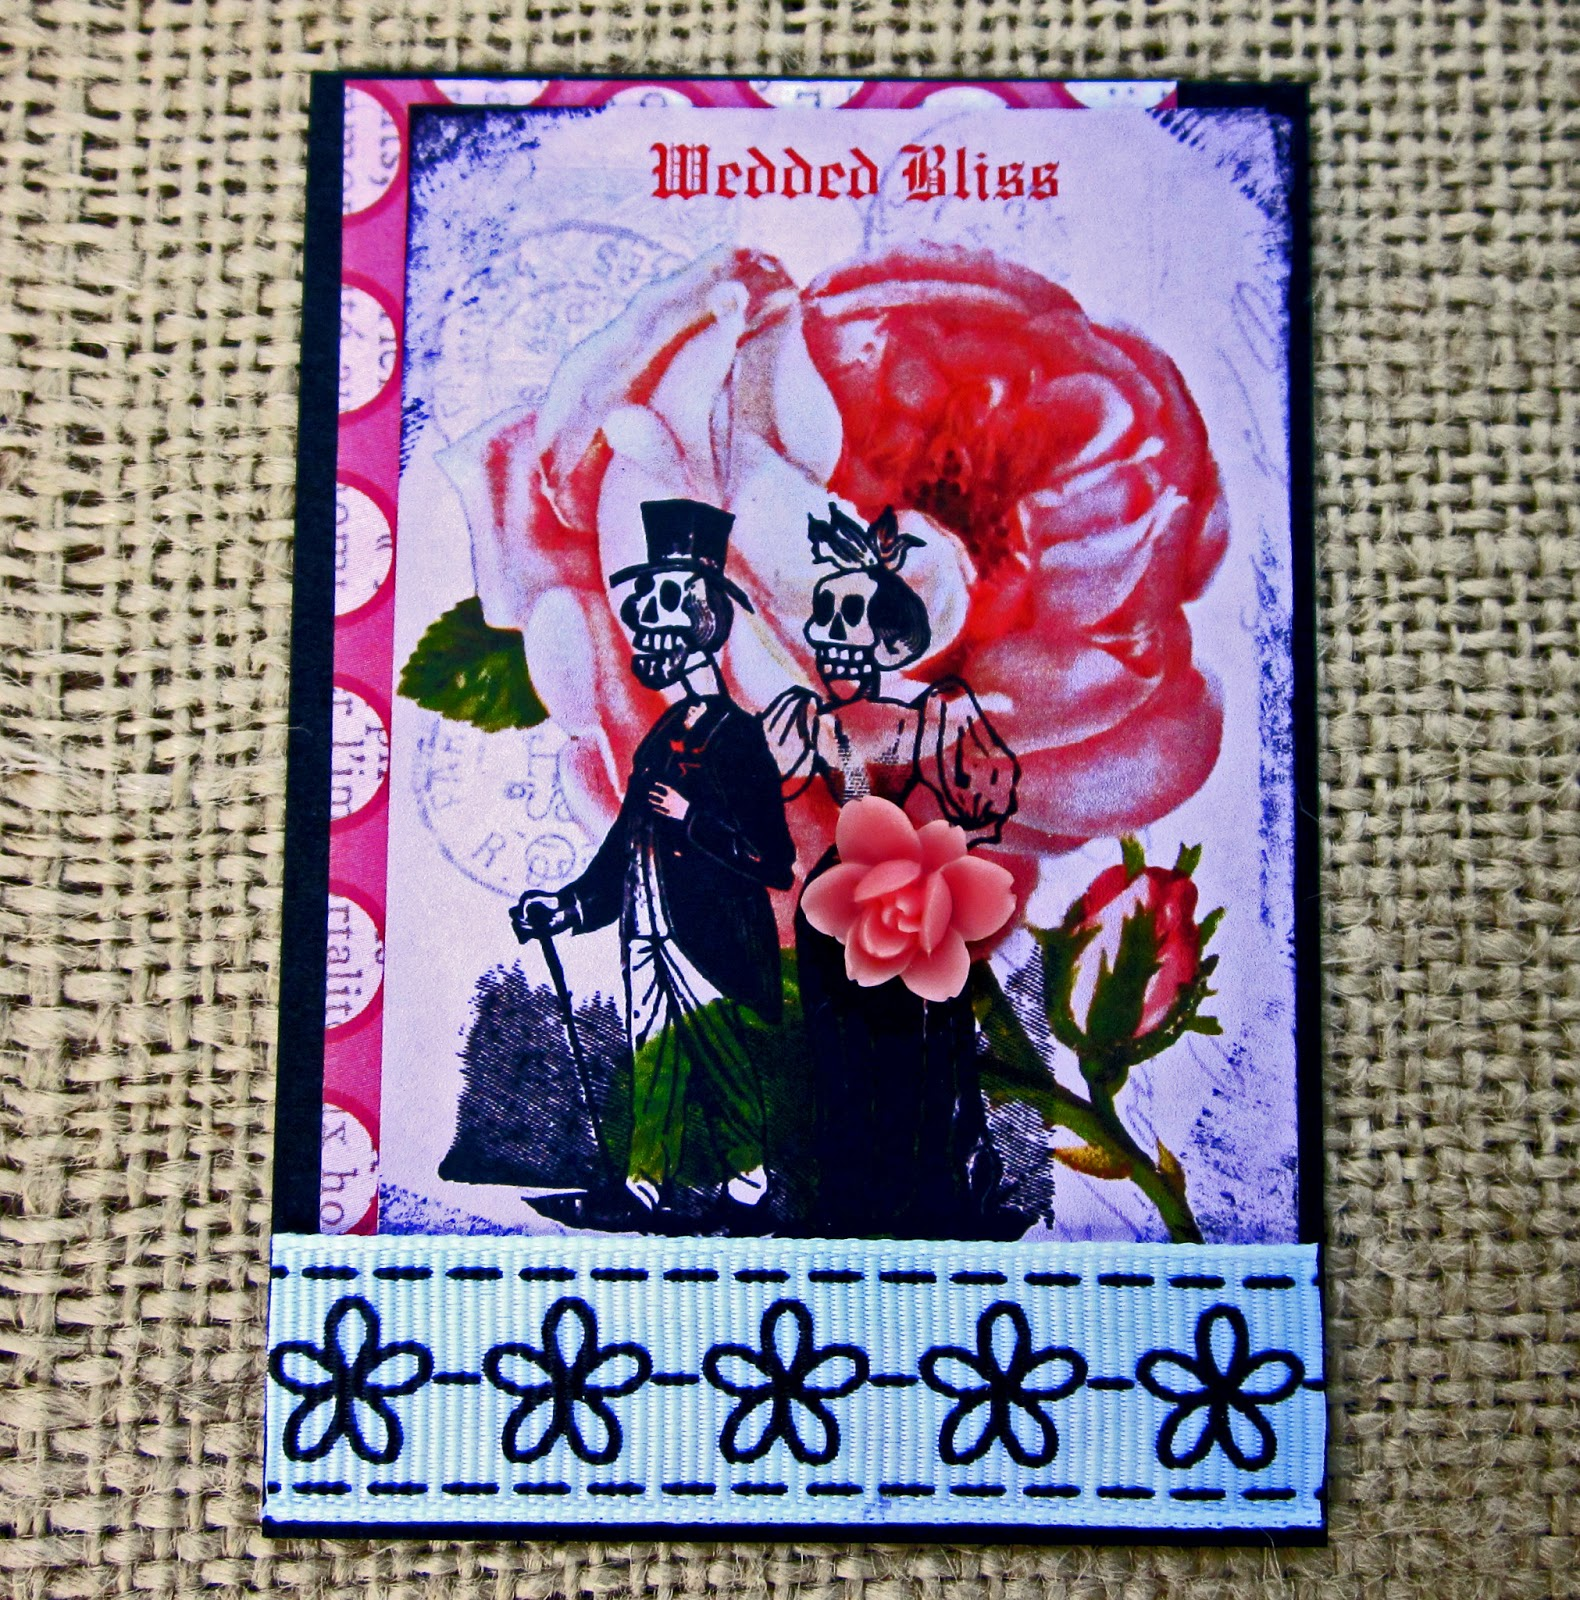 Wedded: Wendylynn's Paper Whims: Wedded Bliss ATC